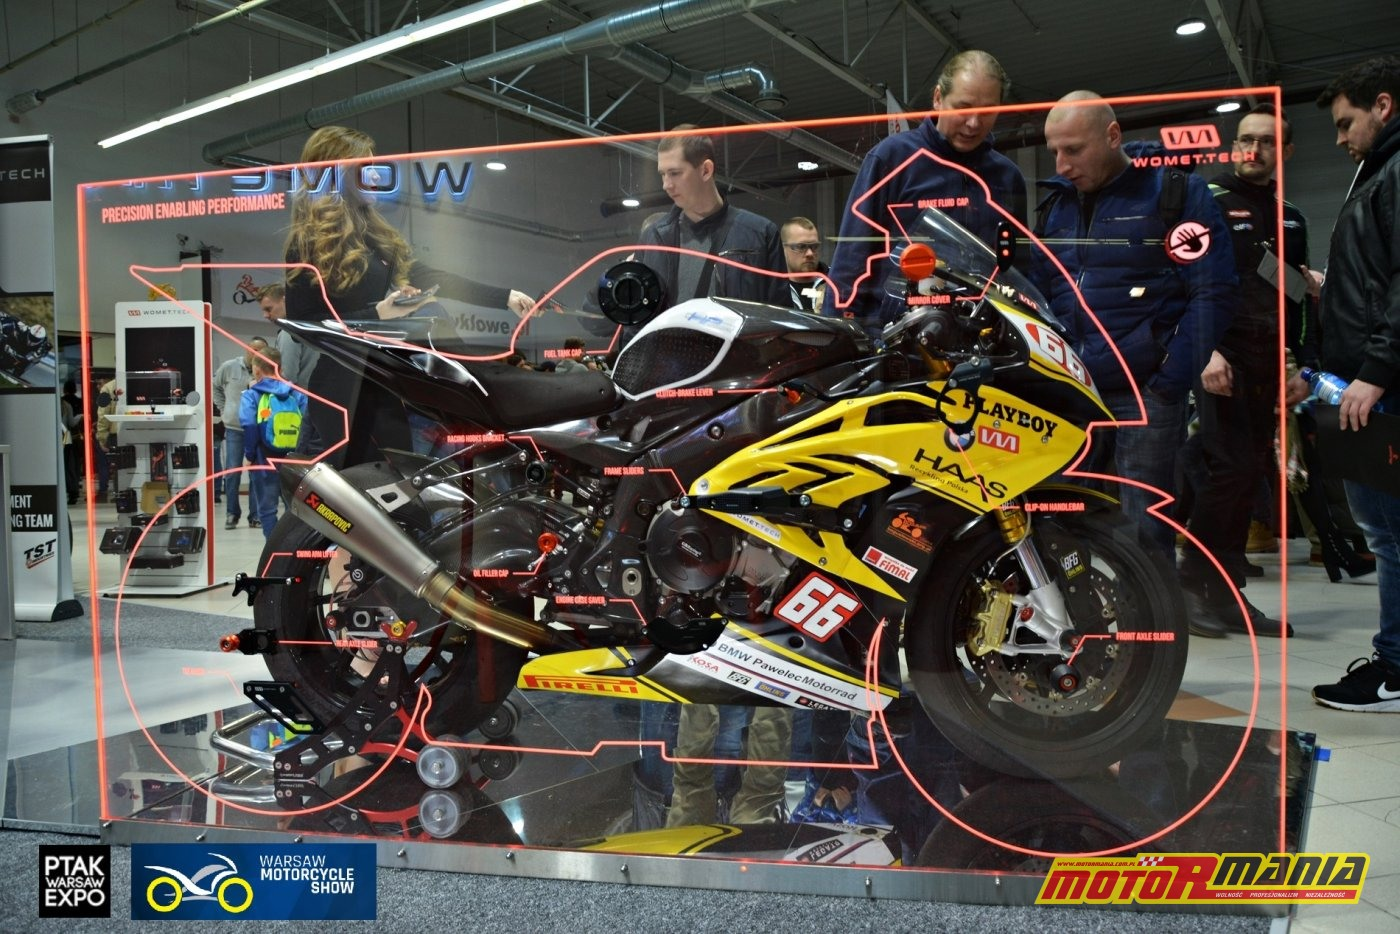 Warsaw Motorcycle Show 2019 (7)